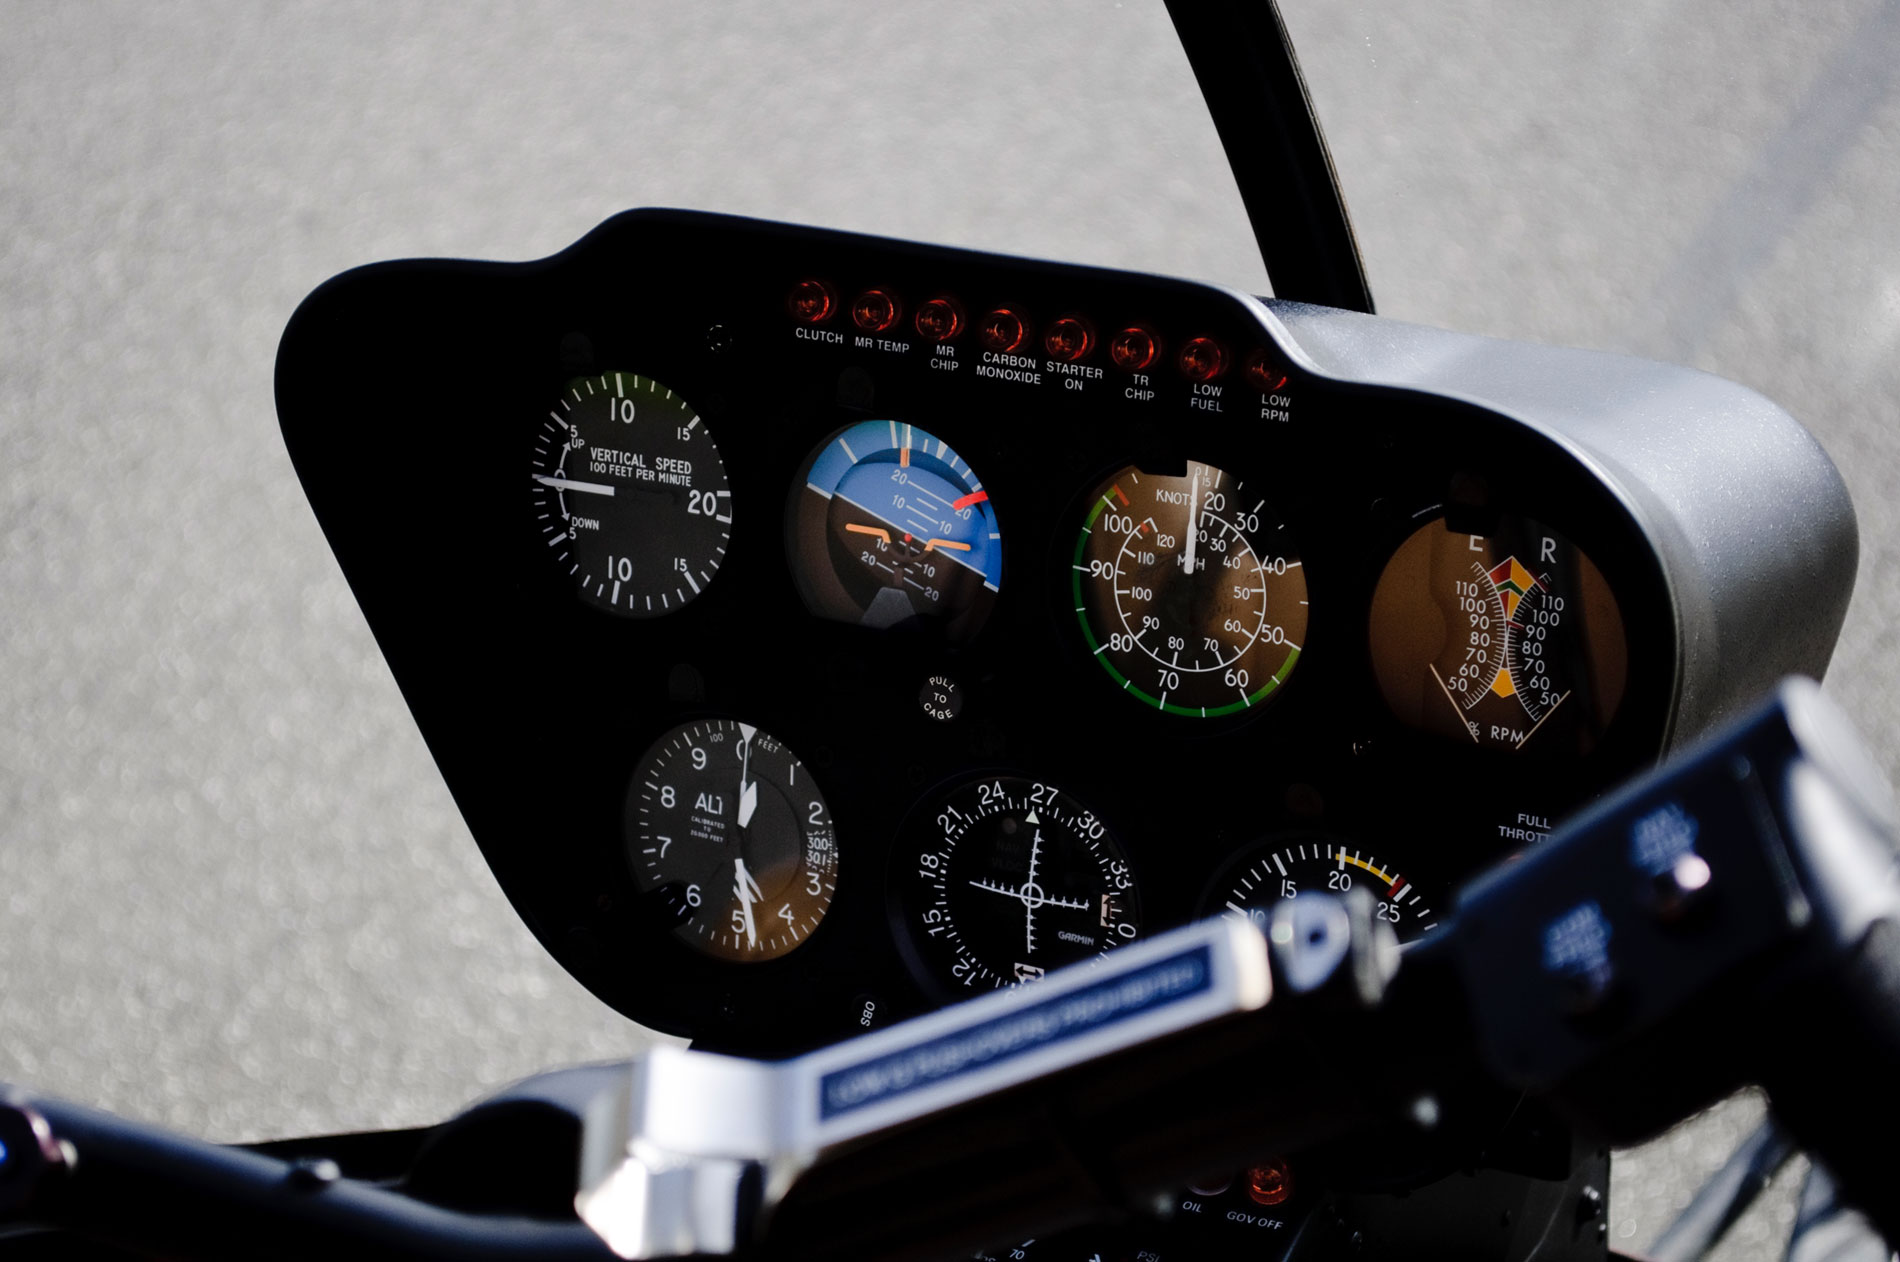 Centennial Helicopters - Danbury Airport - 203 798 9632